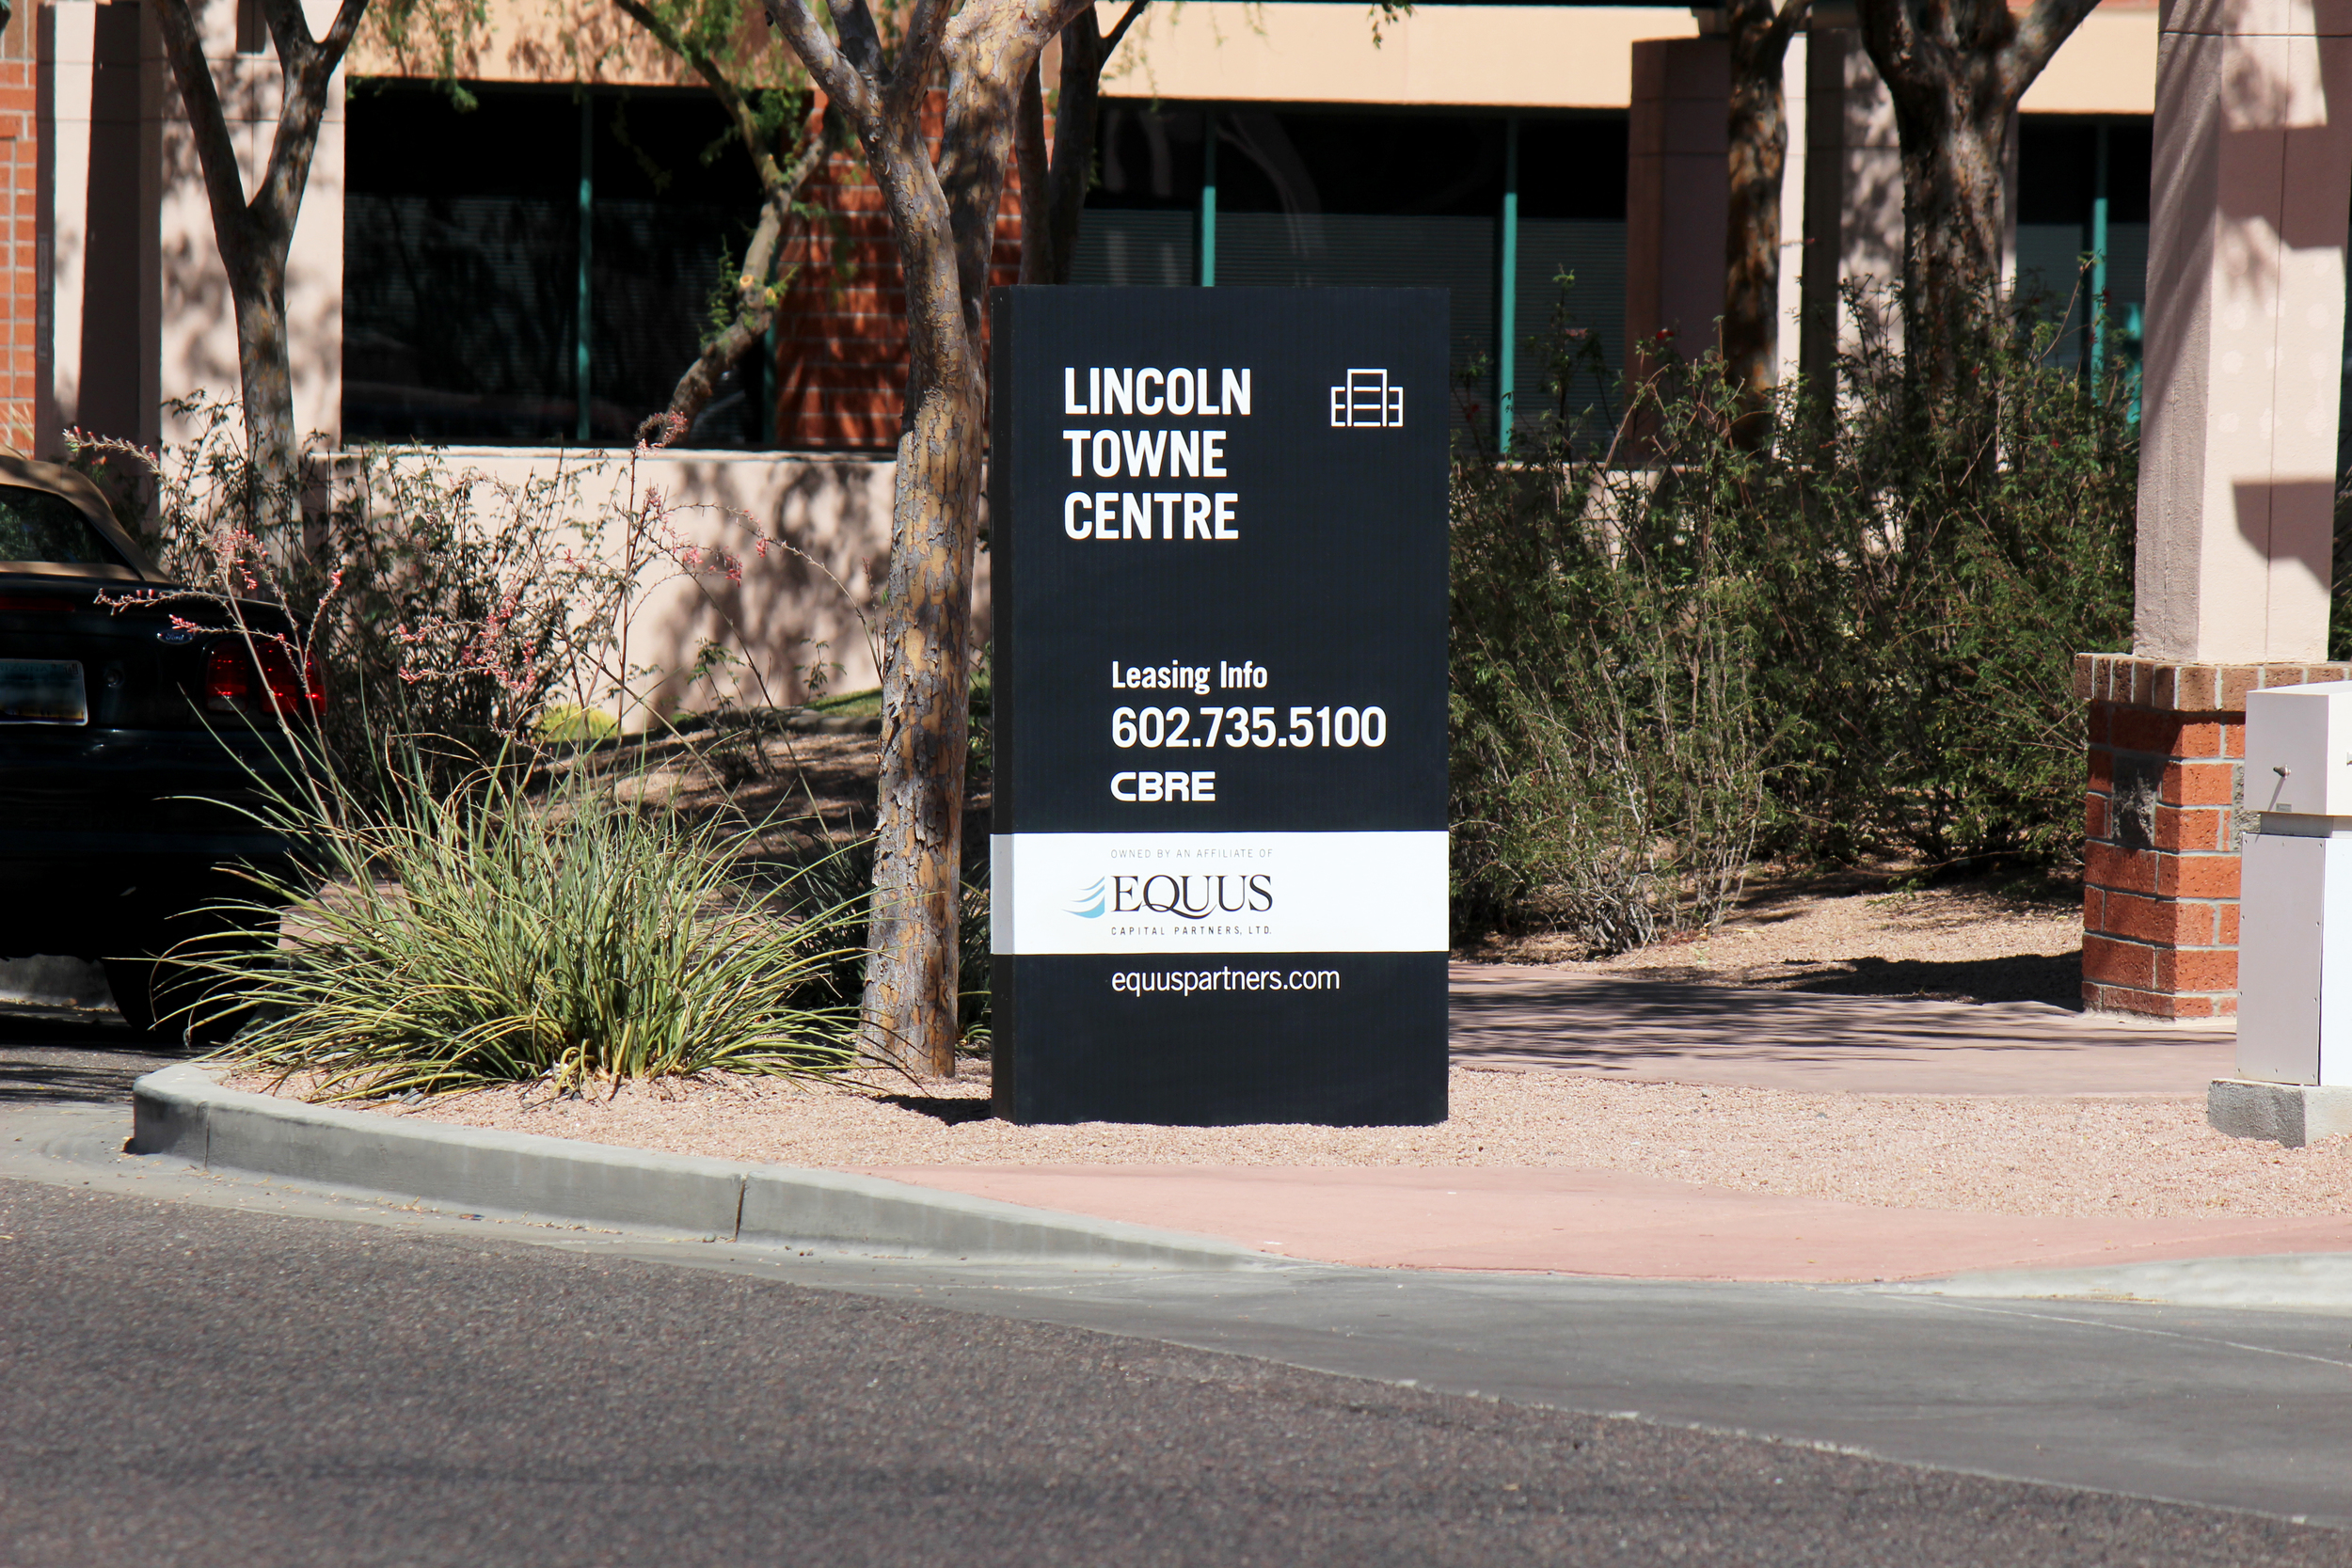 The leasing sign helps promote the project's brand.